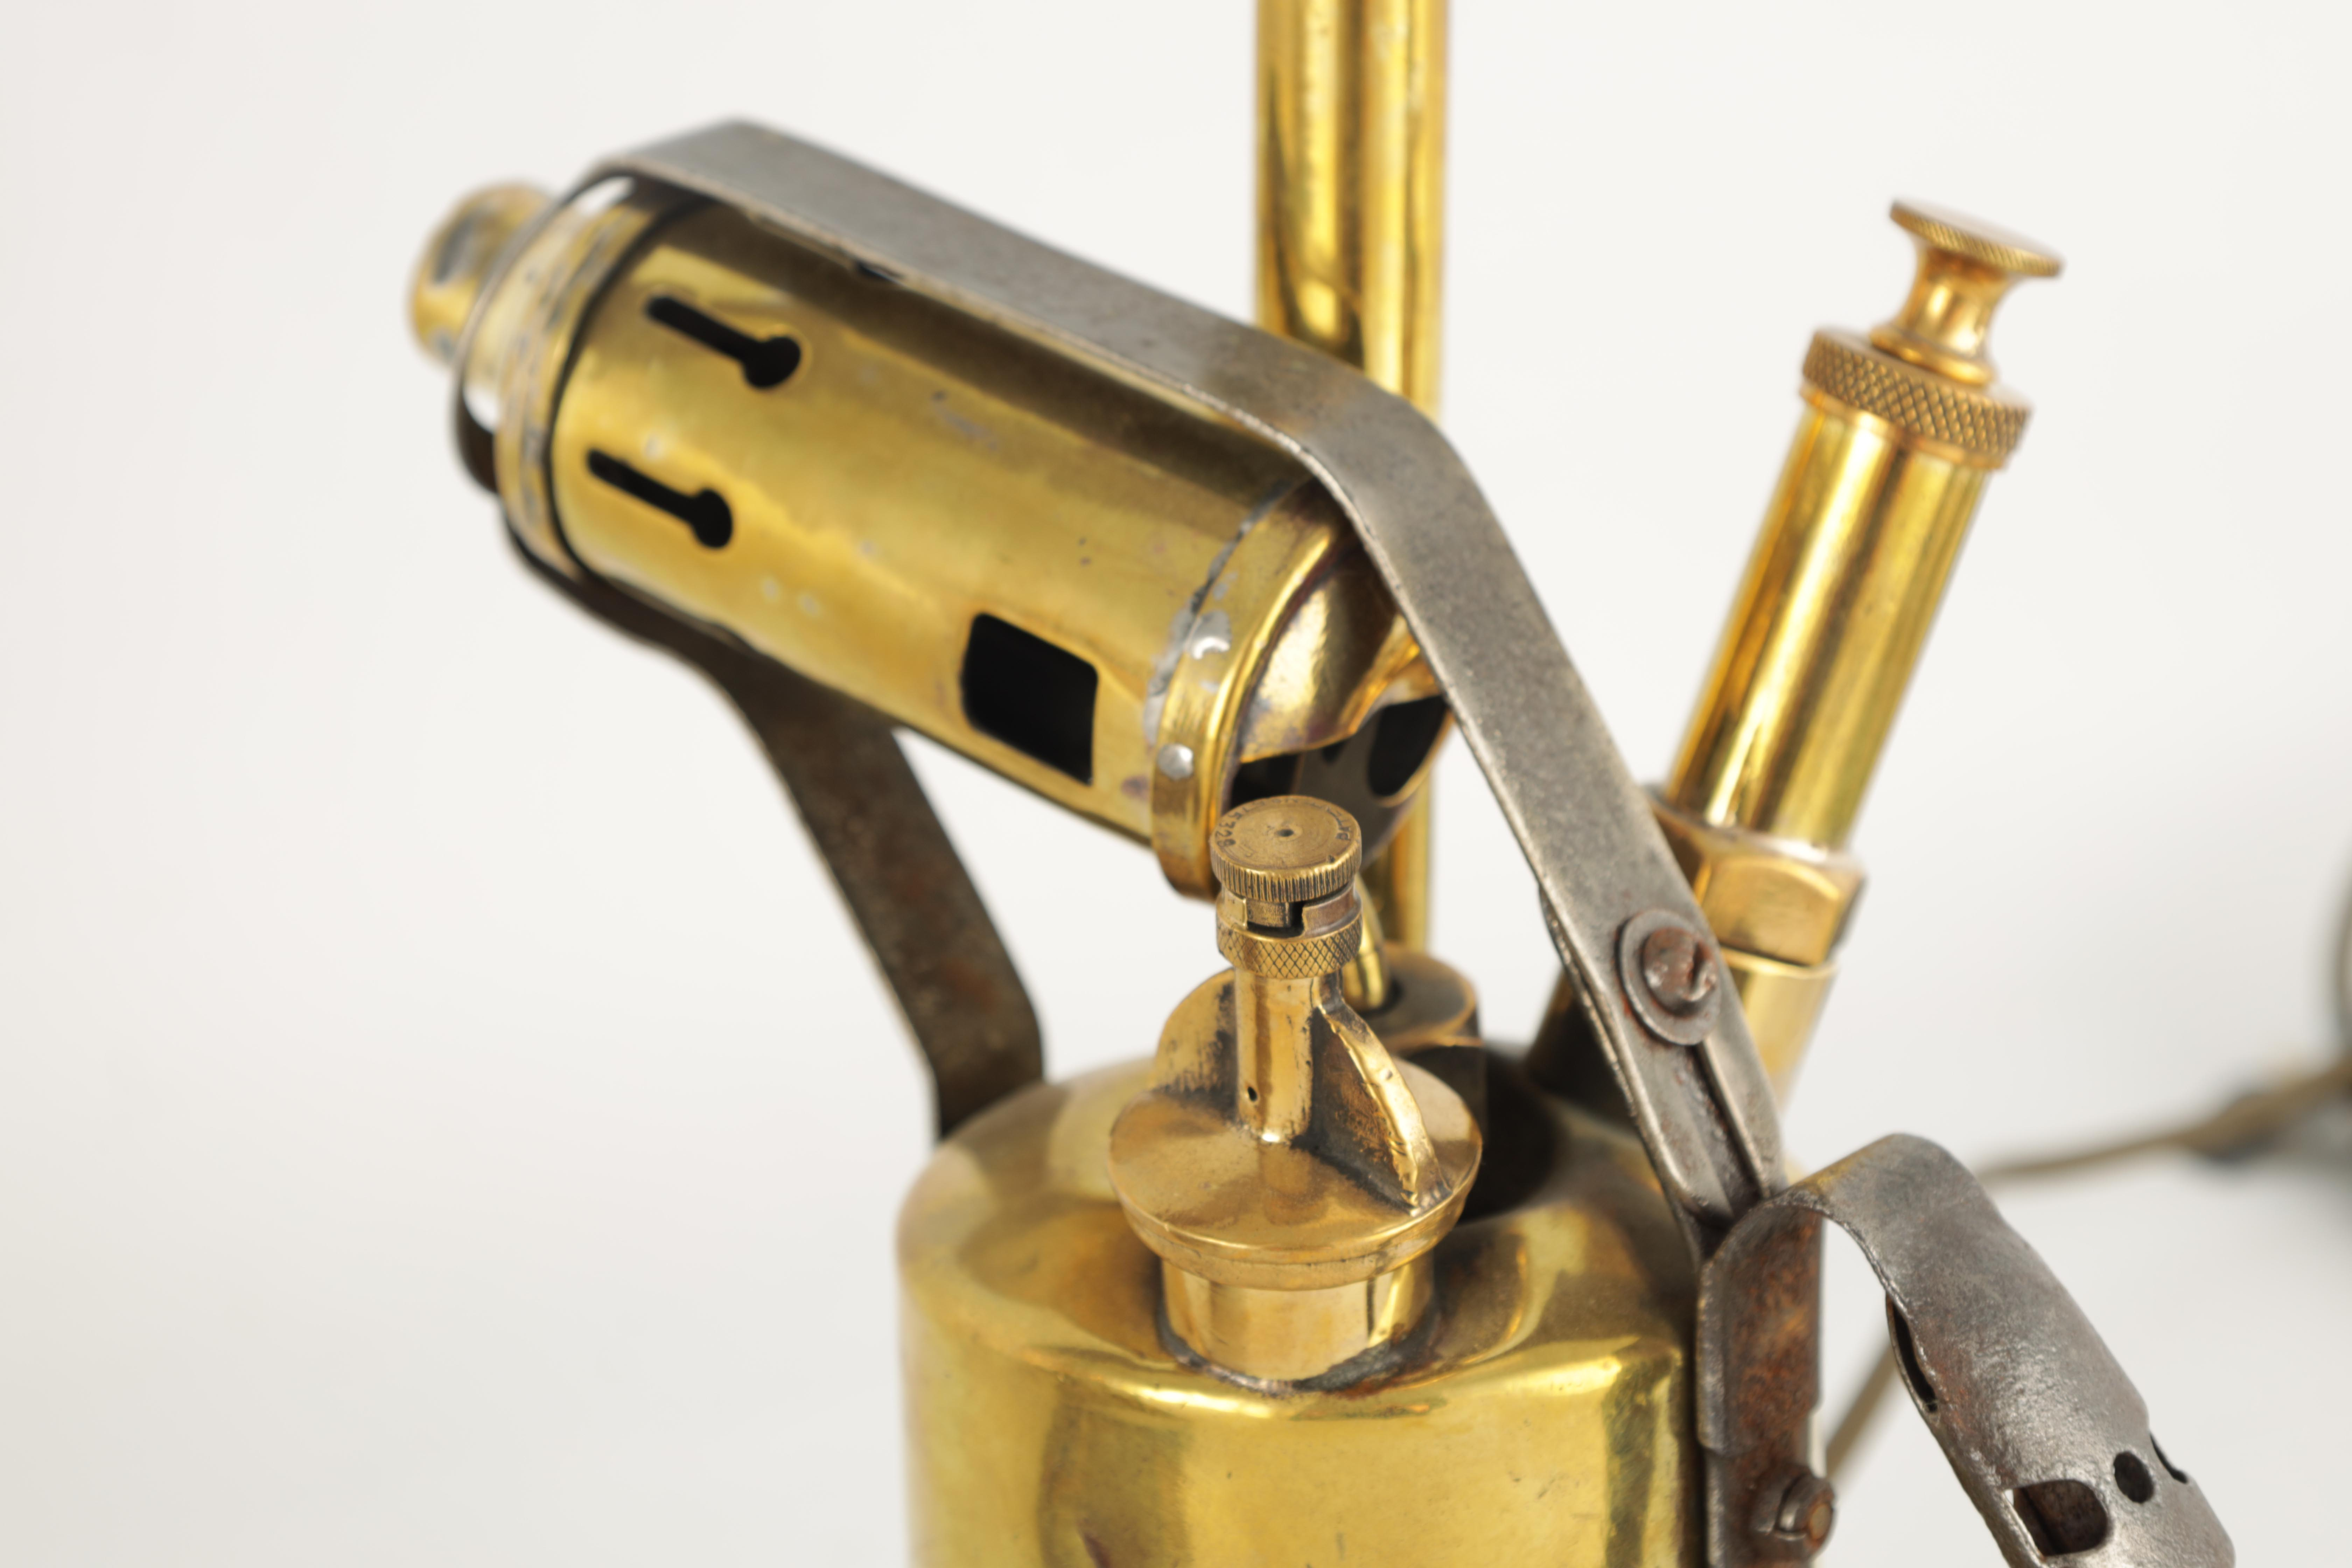 A 19TH CENTURY LACQUERED BRASS MONOCULAR MICROSCOPE with shaped base and rack and pinion focusing - Image 4 of 4